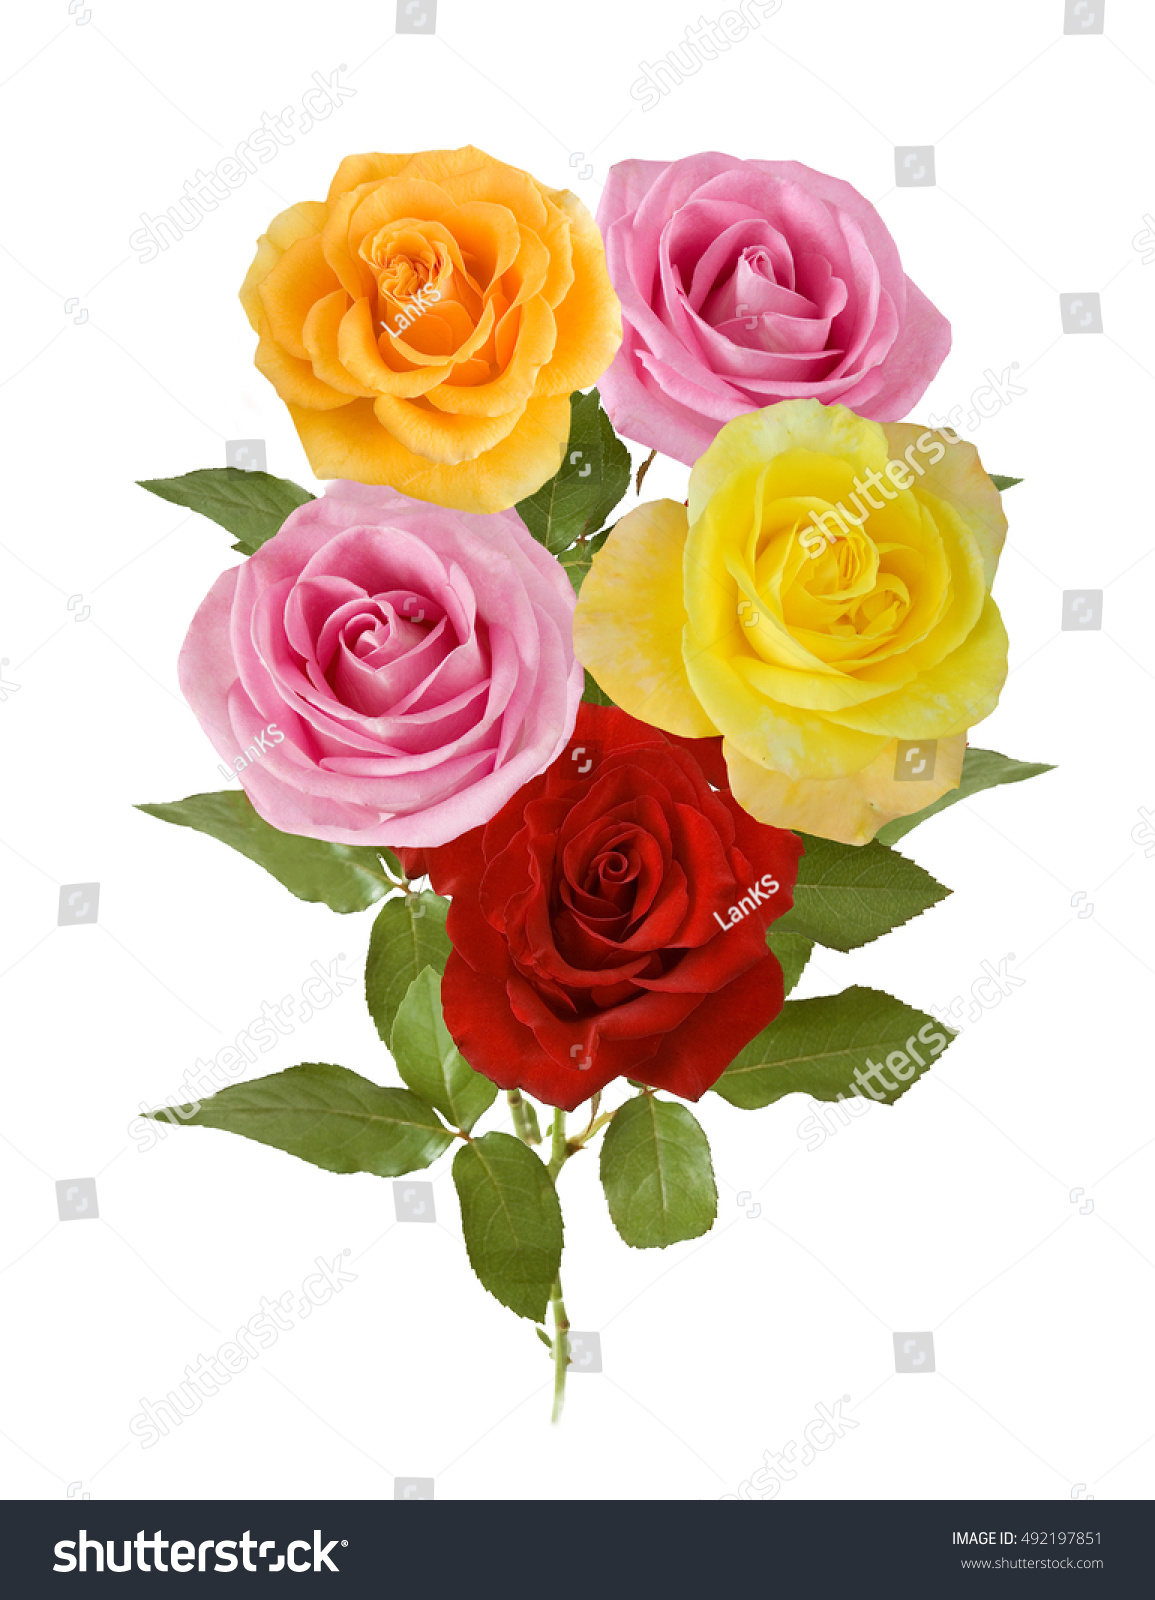 Beautiful pink yellow red rose flowers stock photo 492197851 beautiful pink yellow and red rose flowers bunch isolated on white background dhlflorist Image collections